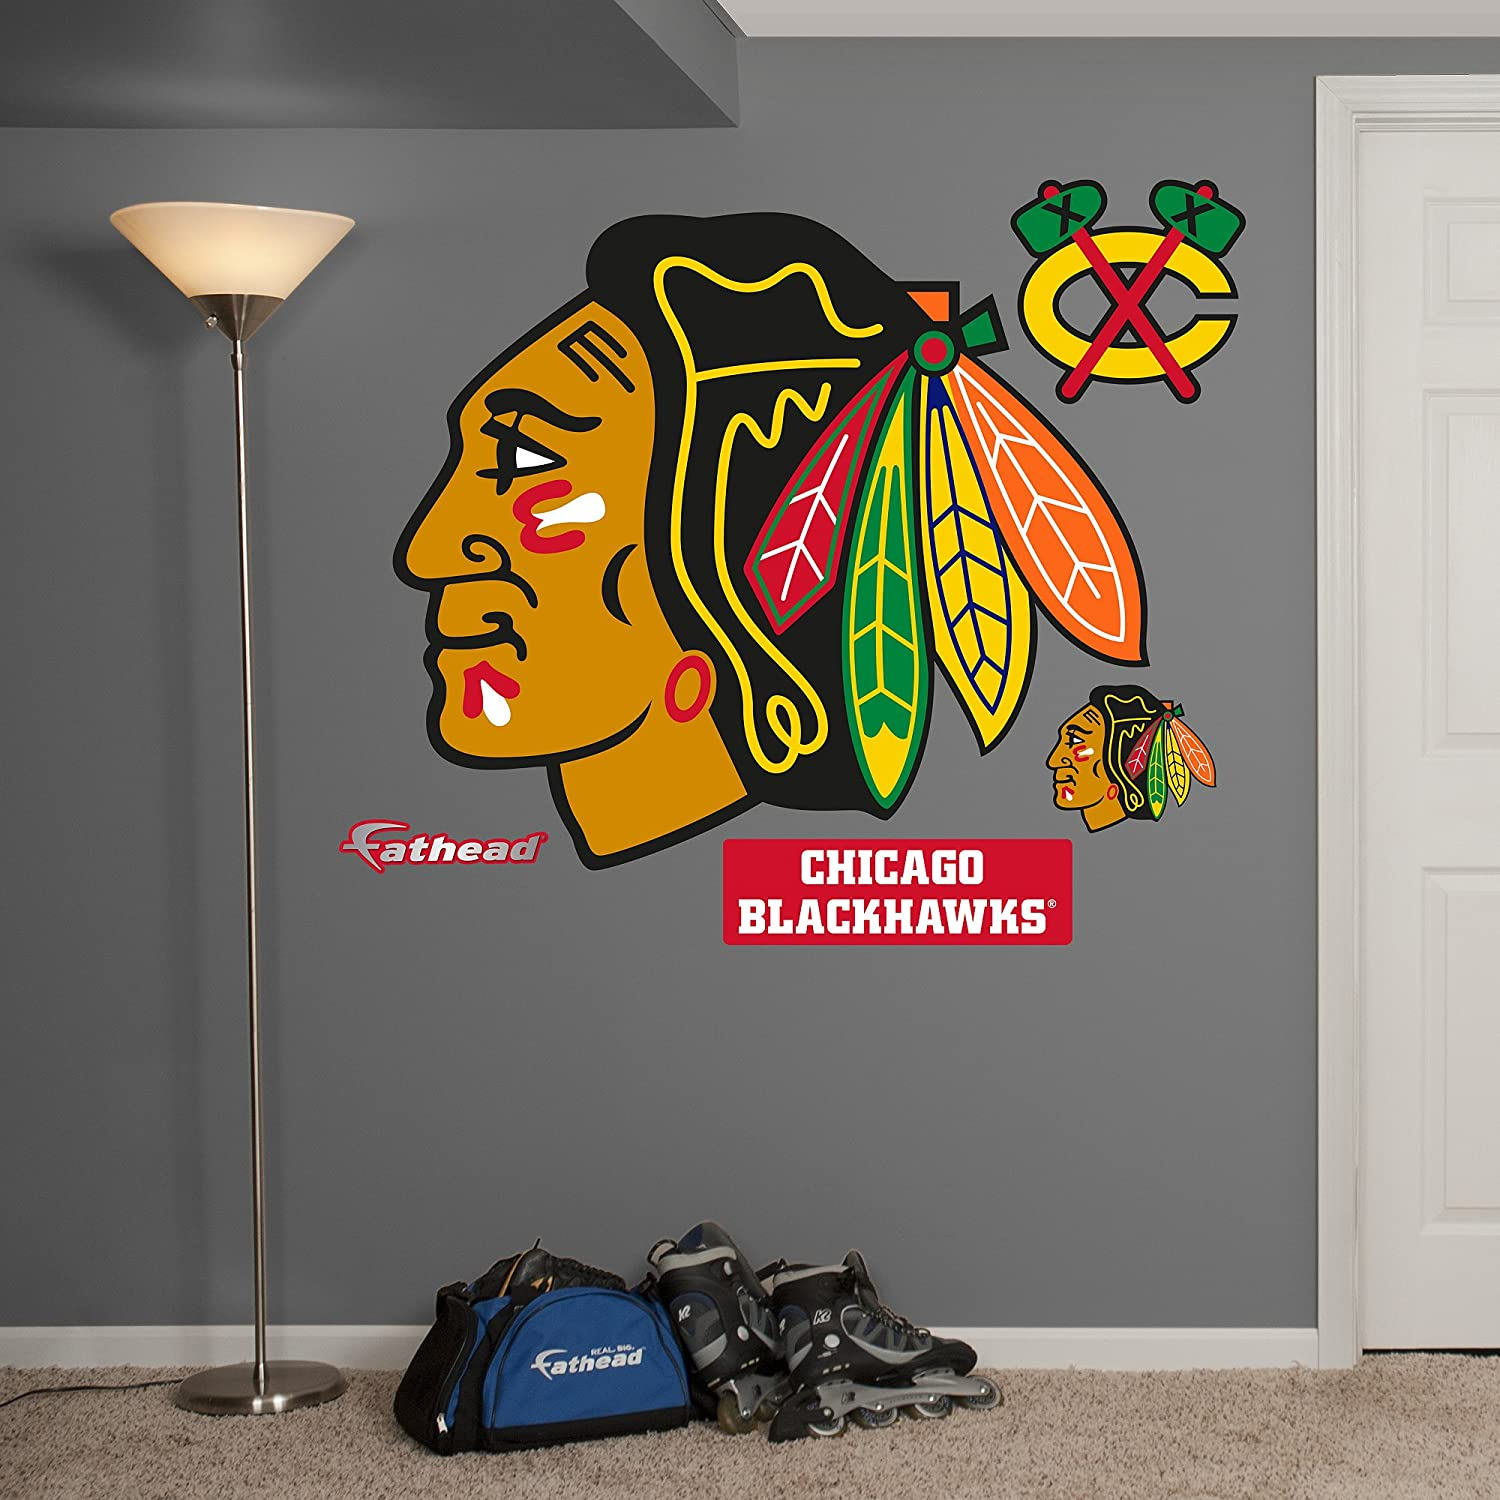 Exceptionnel Amazon.com : NHL Chicago Blackhawks Logo Fathead Wall Decal, Real Big :  Sports U0026 Outdoors